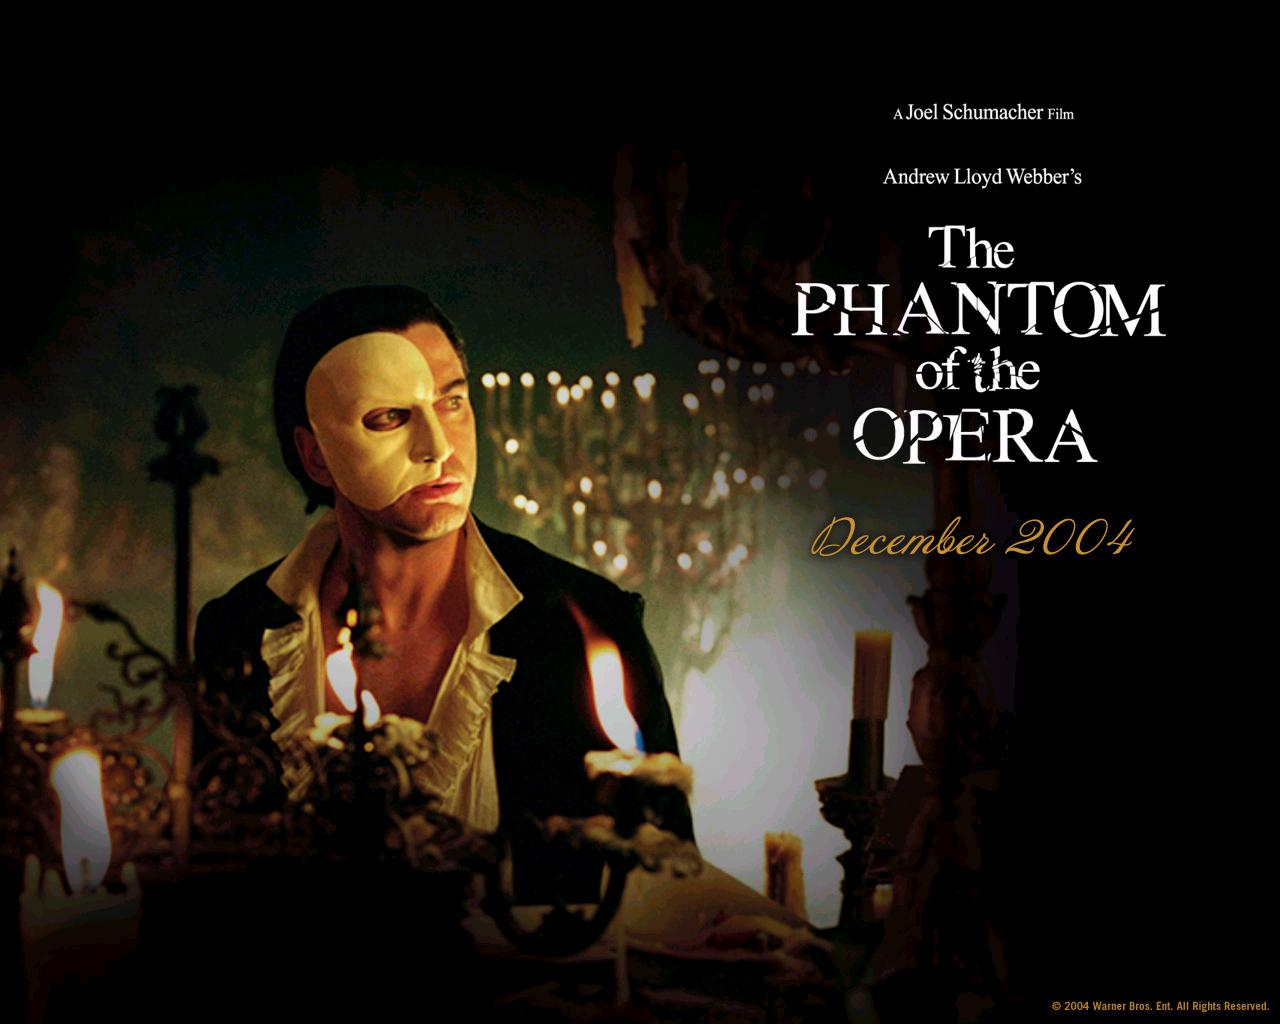 http://4.bp.blogspot.com/-s3csZYCw0cM/TtAEZ9esddI/AAAAAAAABNg/Bcpx4iL3aQY/s1600/2004_the_phantom_of_the_opera_wallpaper_004.jpg